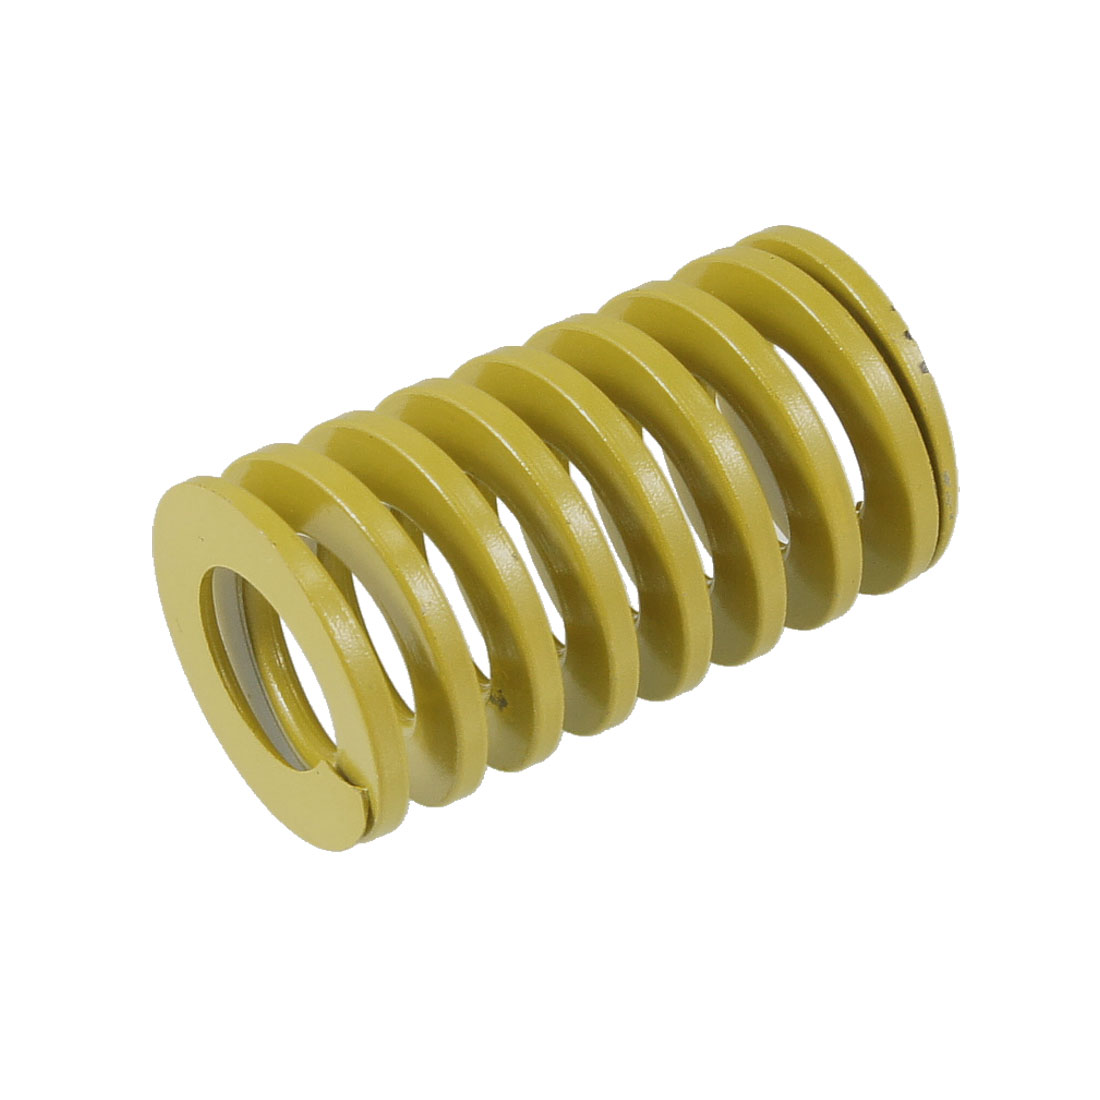 30mm x 16mm x 50mm Rectangular Section Mold Mould Die Spring